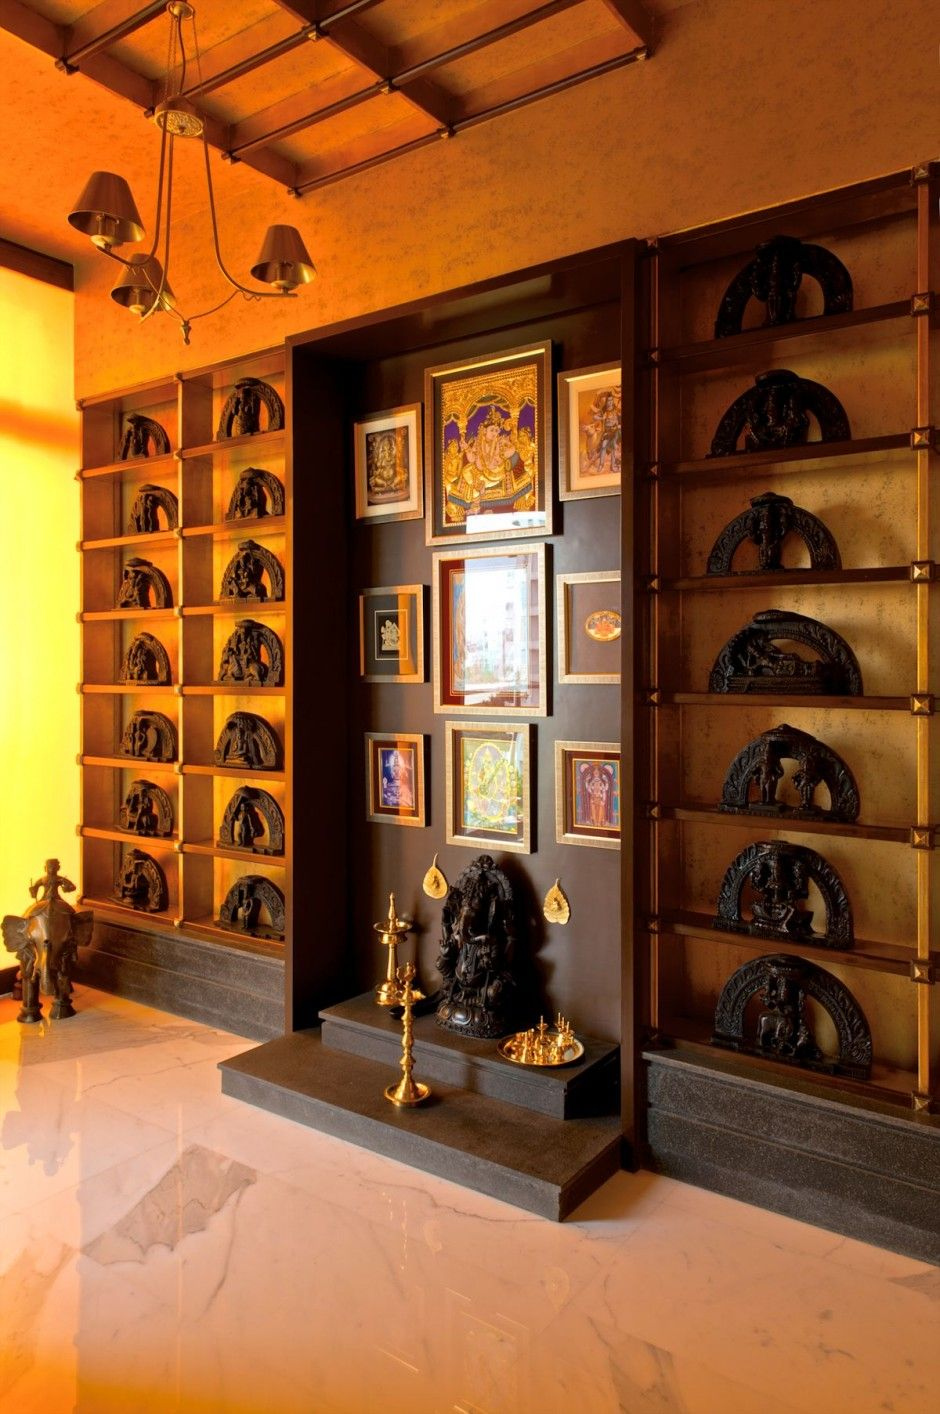 Wood panelling and frames home pinterest pooja rooms room and